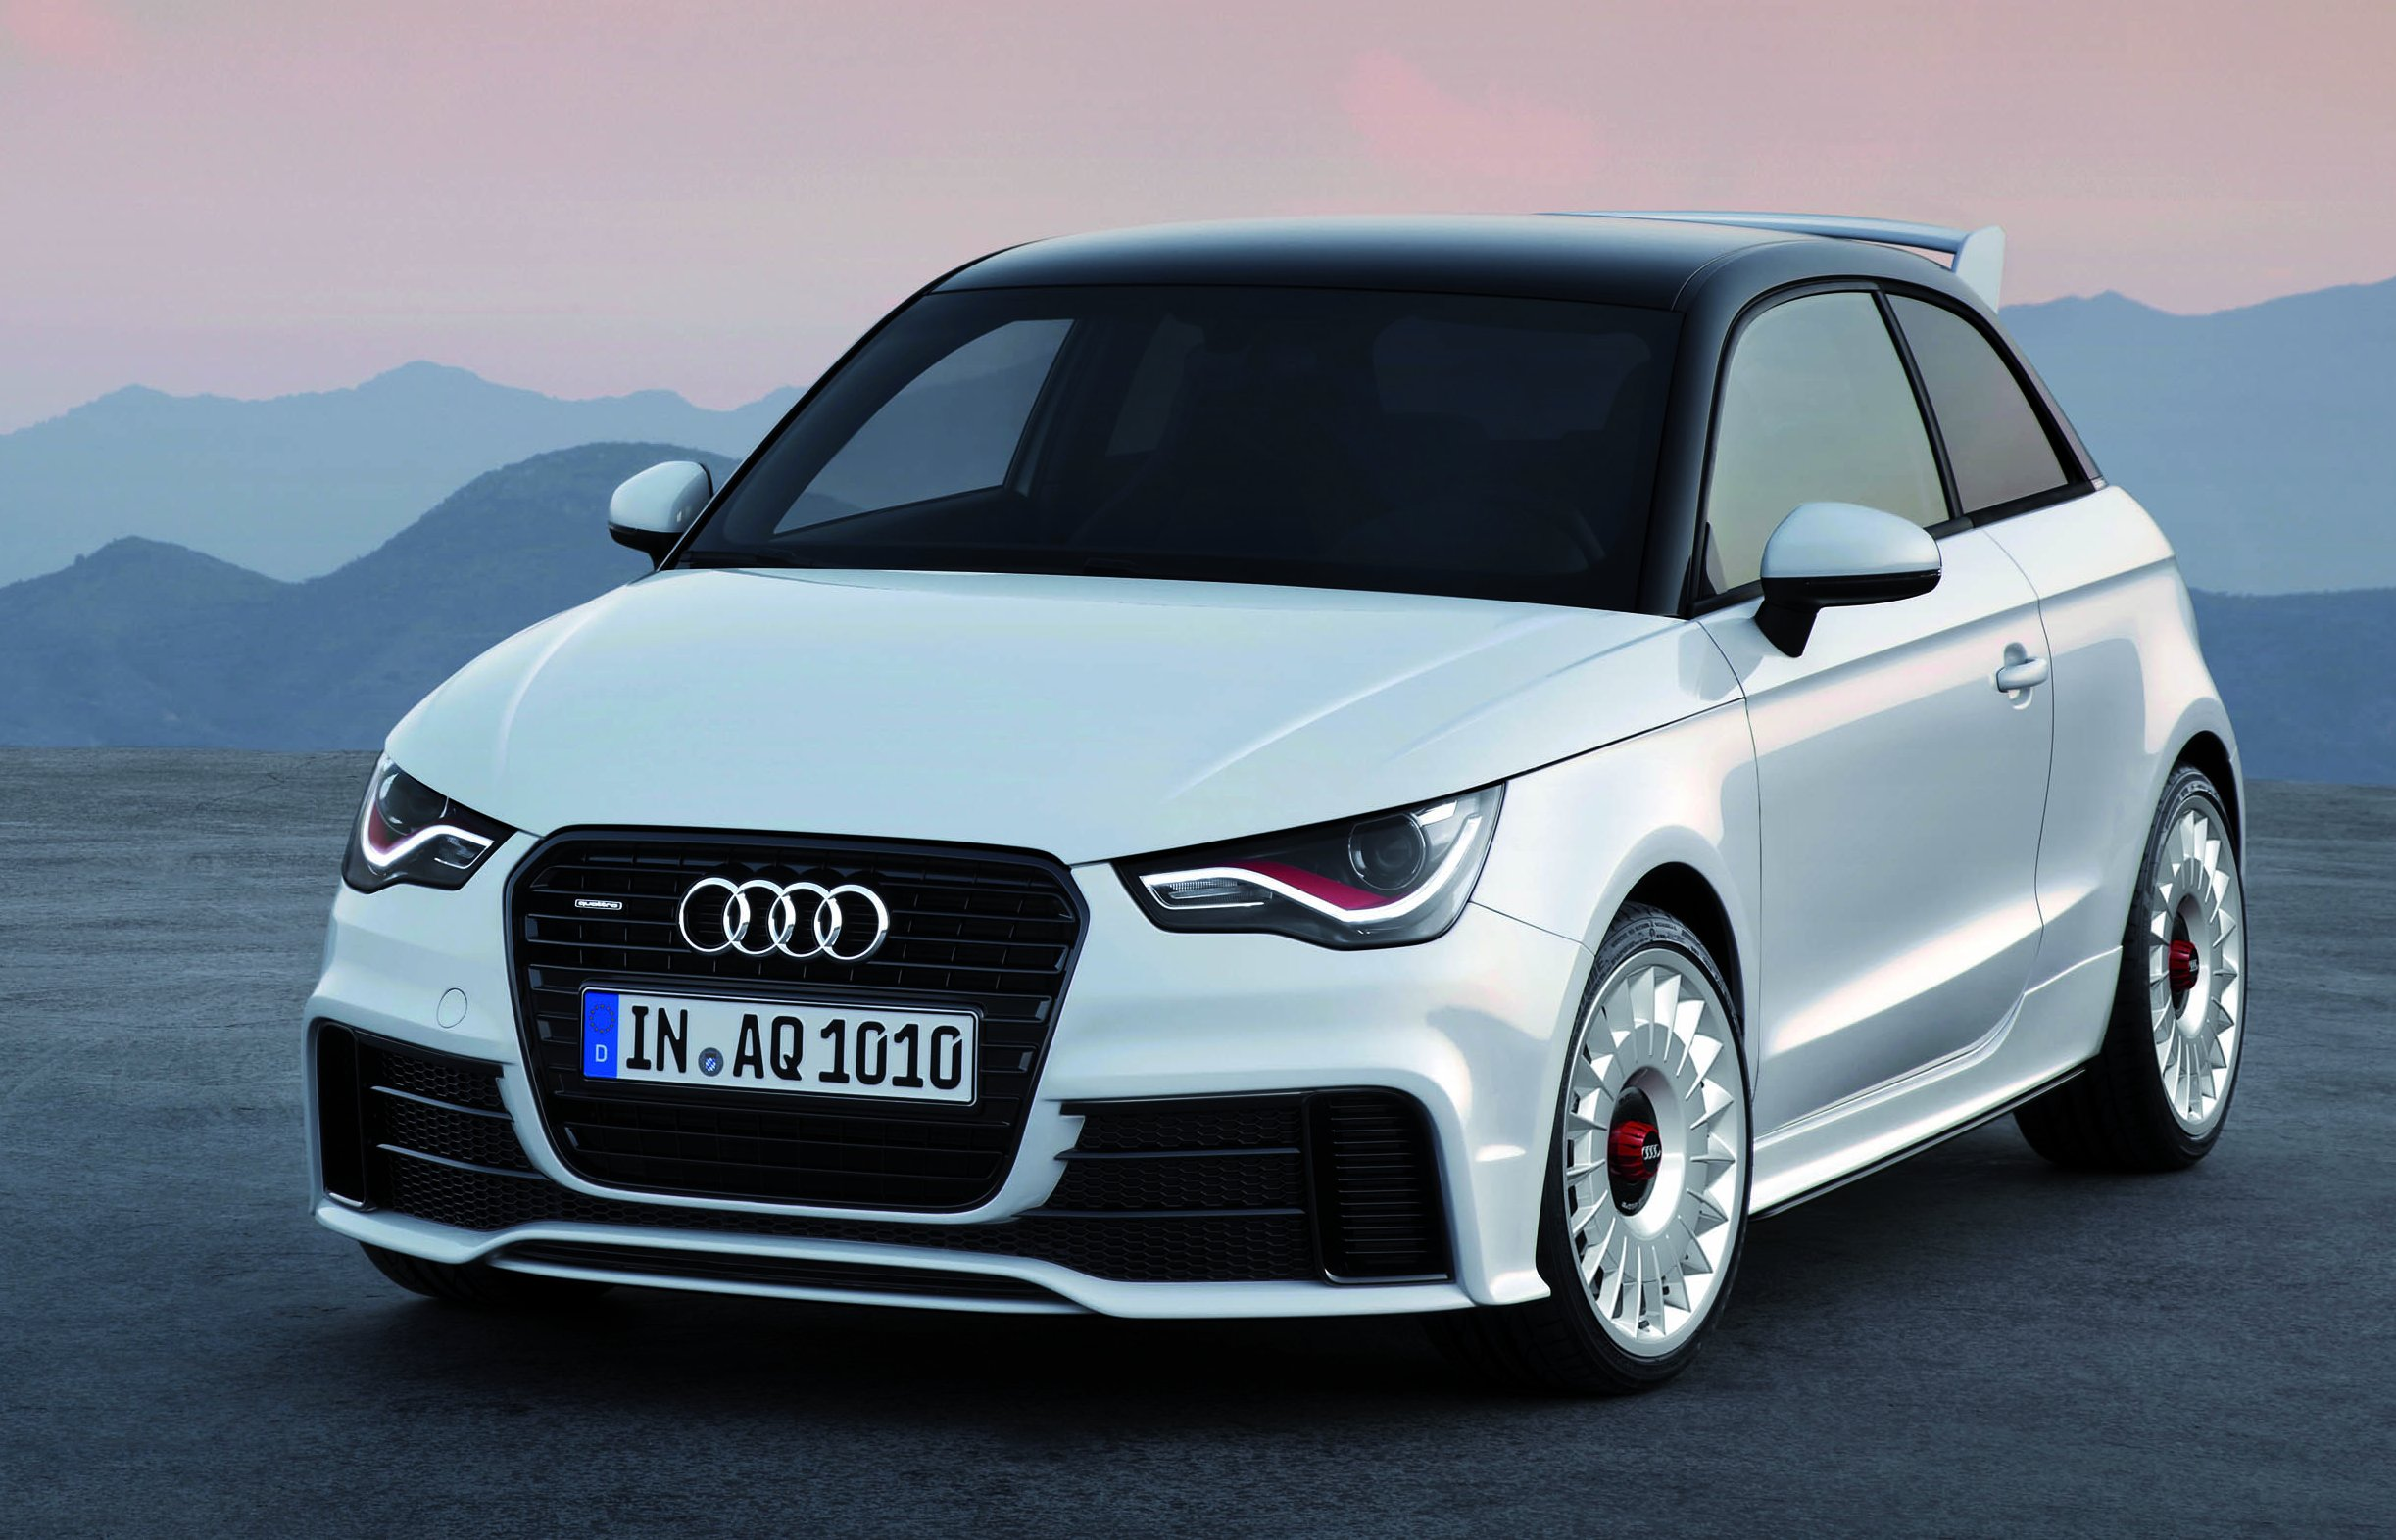 Audi A1 Quattro 256 Hp And 350 Nm Only 333 Units Image 81102